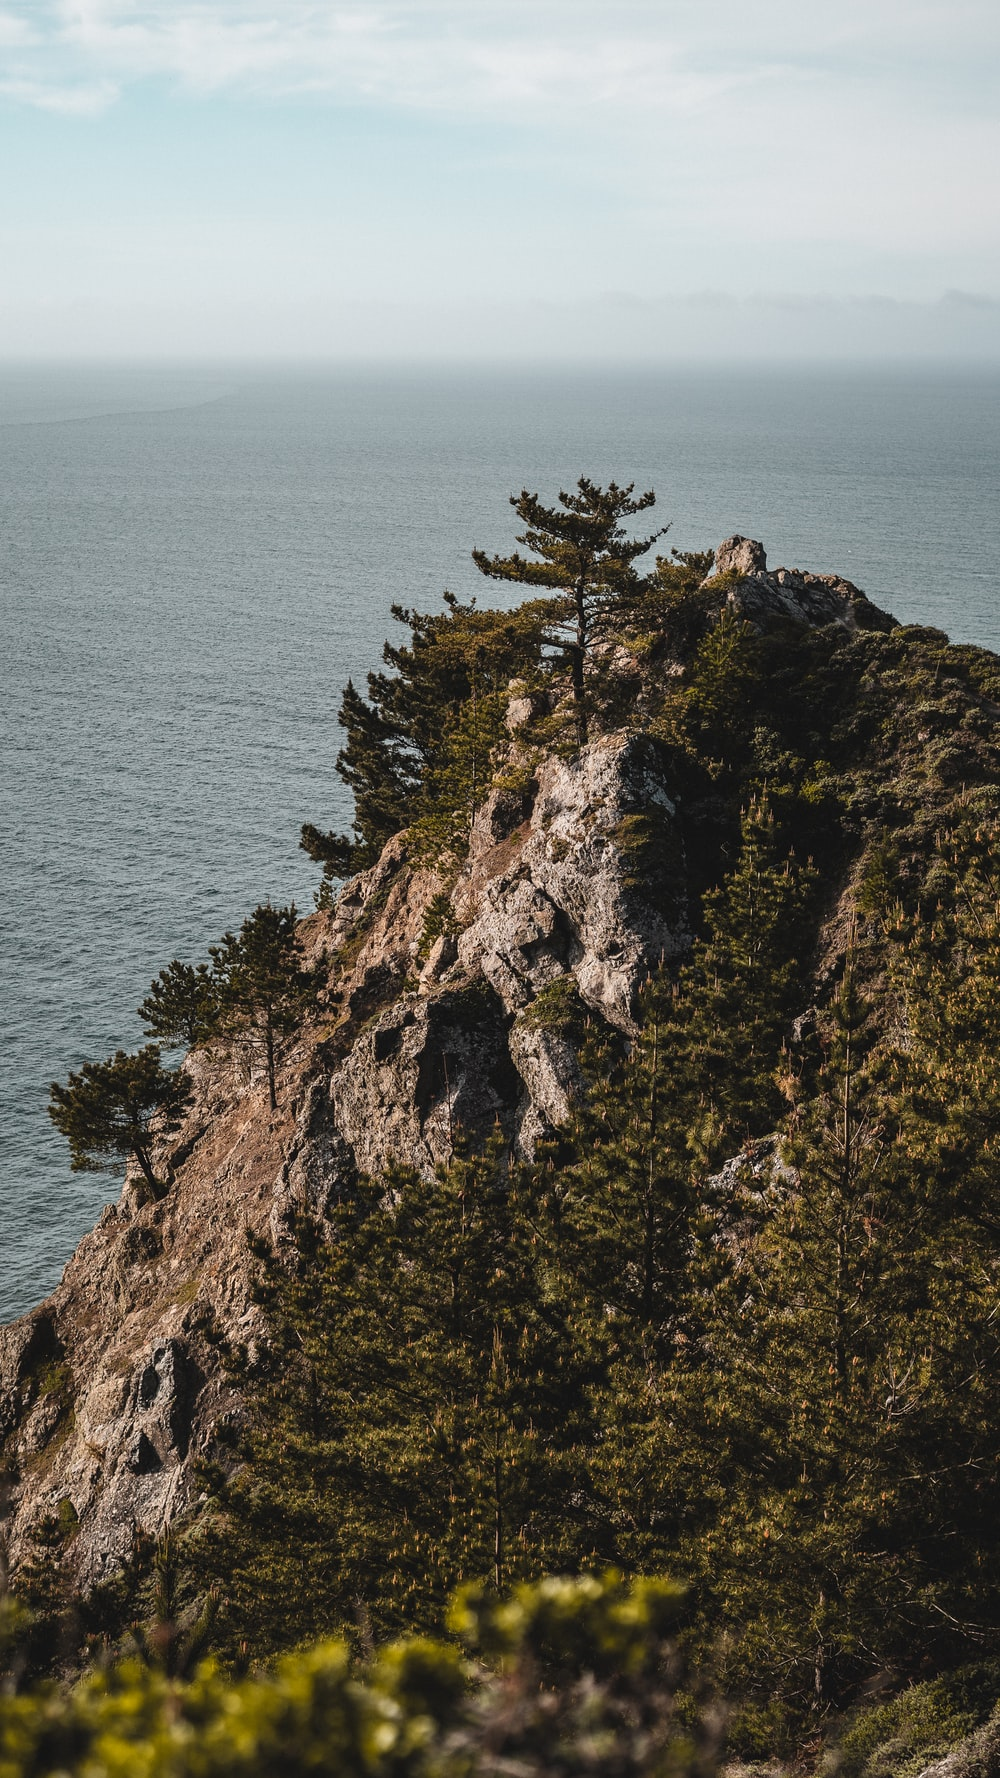 green trees on brown rock formation near sea during daytime